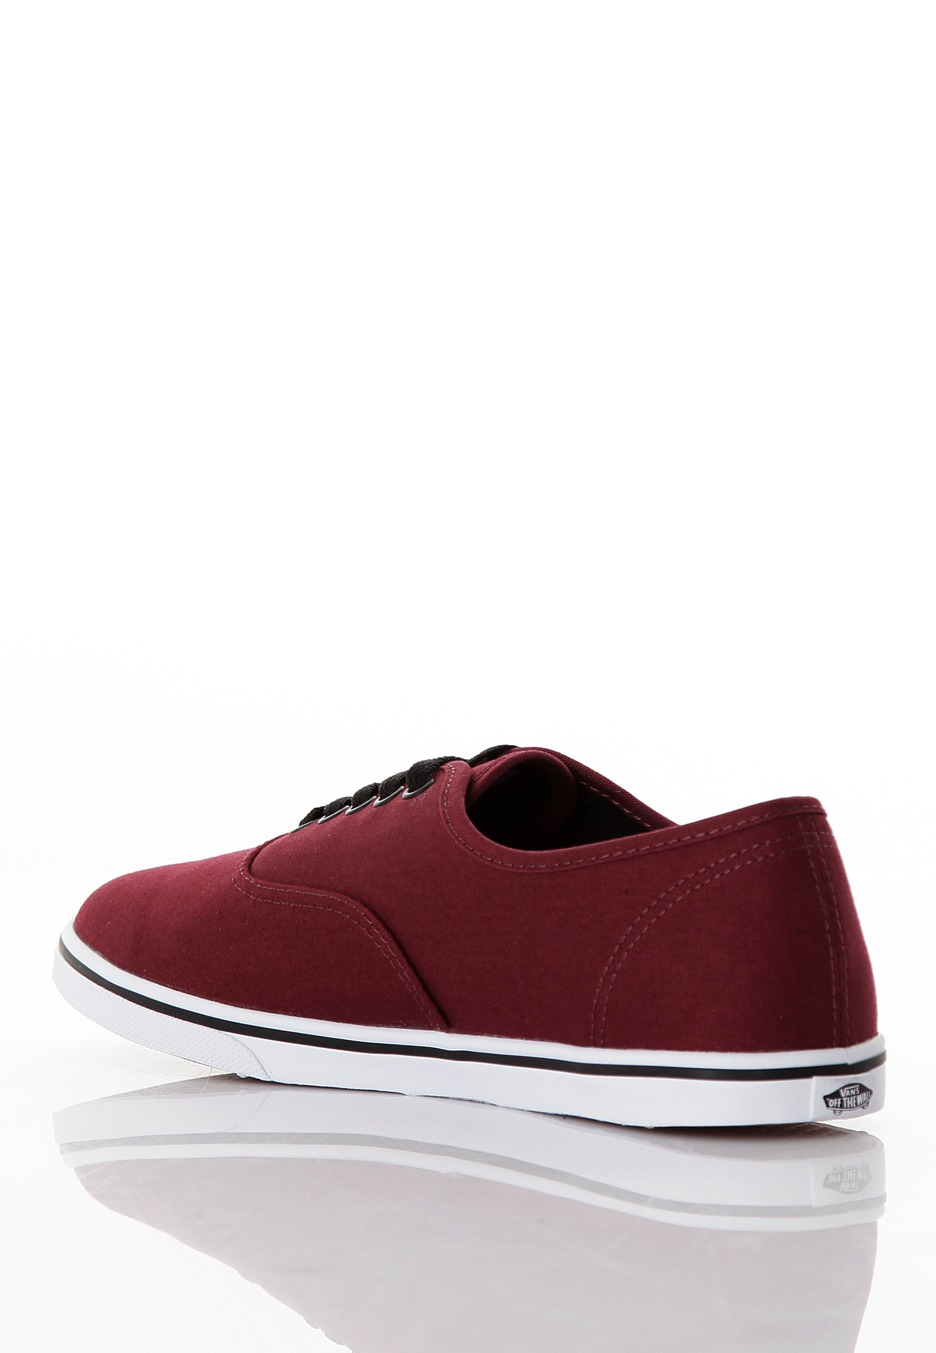 1bd366059b4f ... Vans - Authentic Lo Pro Tawny Port True White - Girl Shoes ...